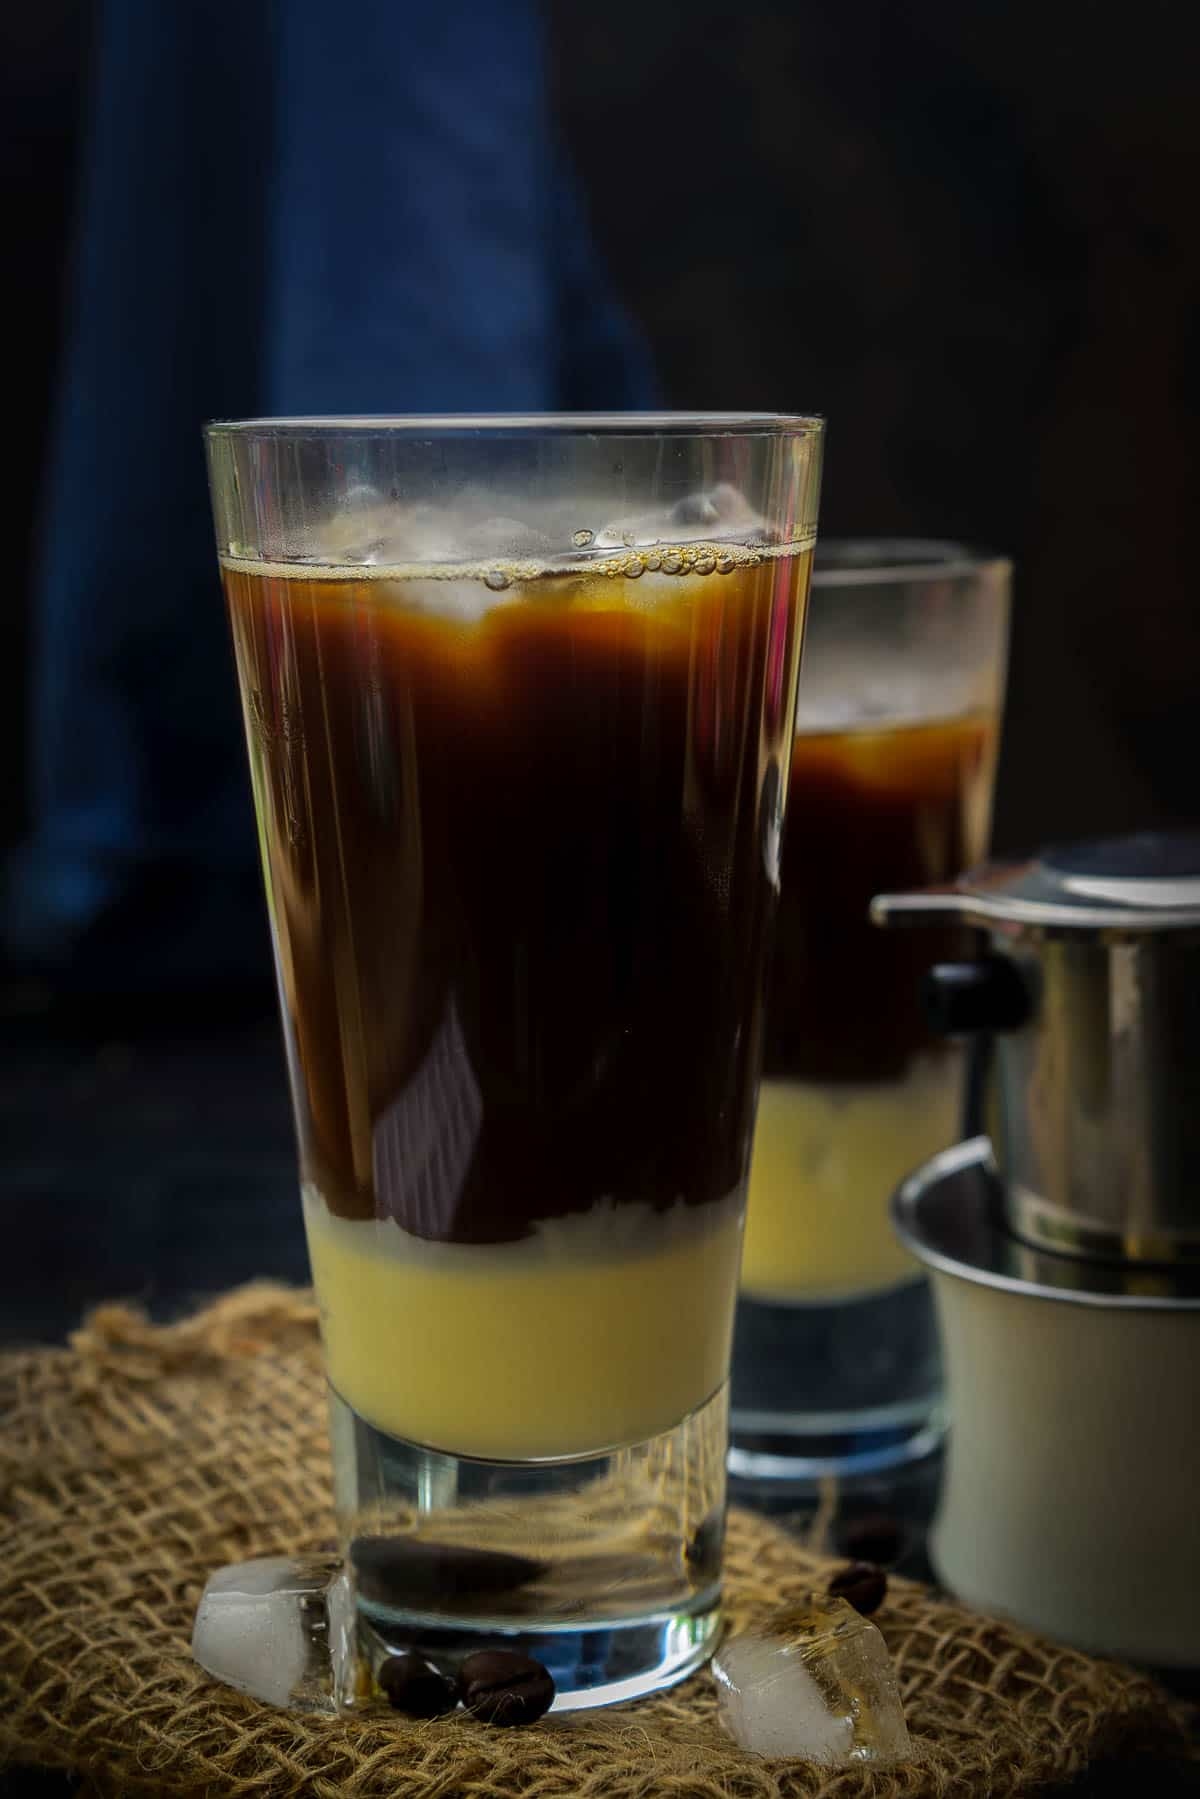 Vietnamese Iced Coffee served in a glass.